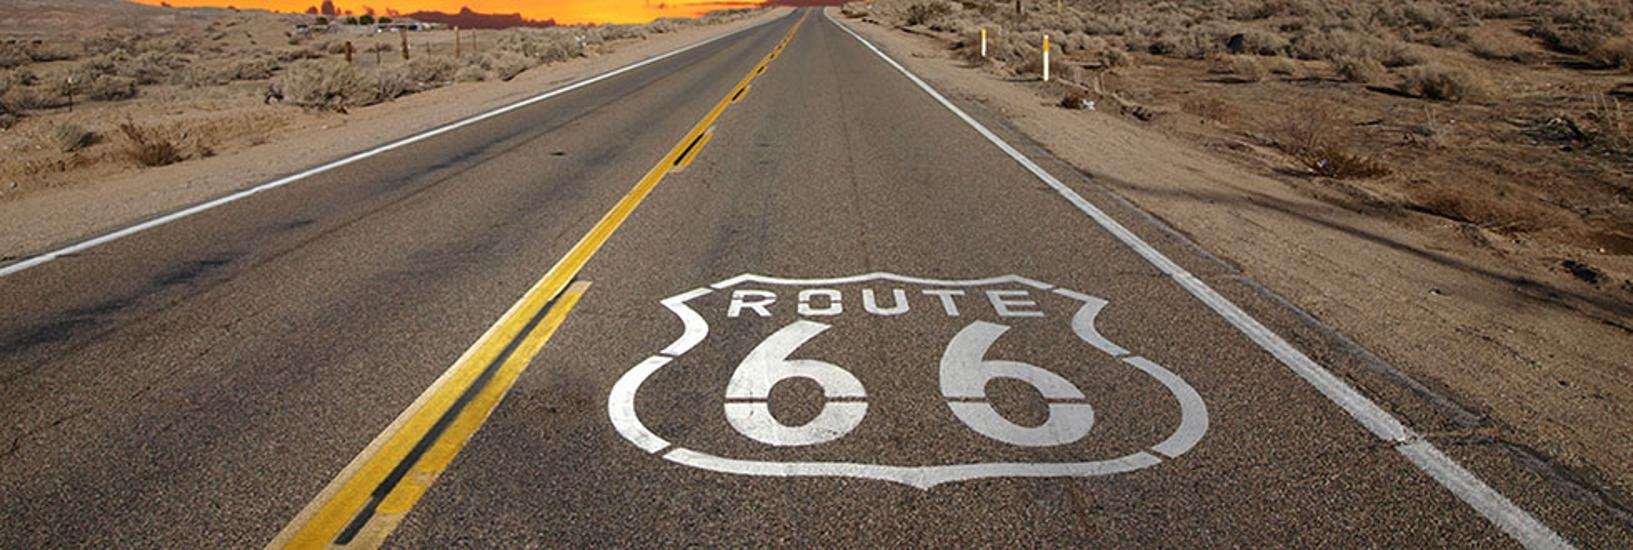 Route 66 Brunch: A Taste Of True Americana At Corinthia Budapest, 24 May